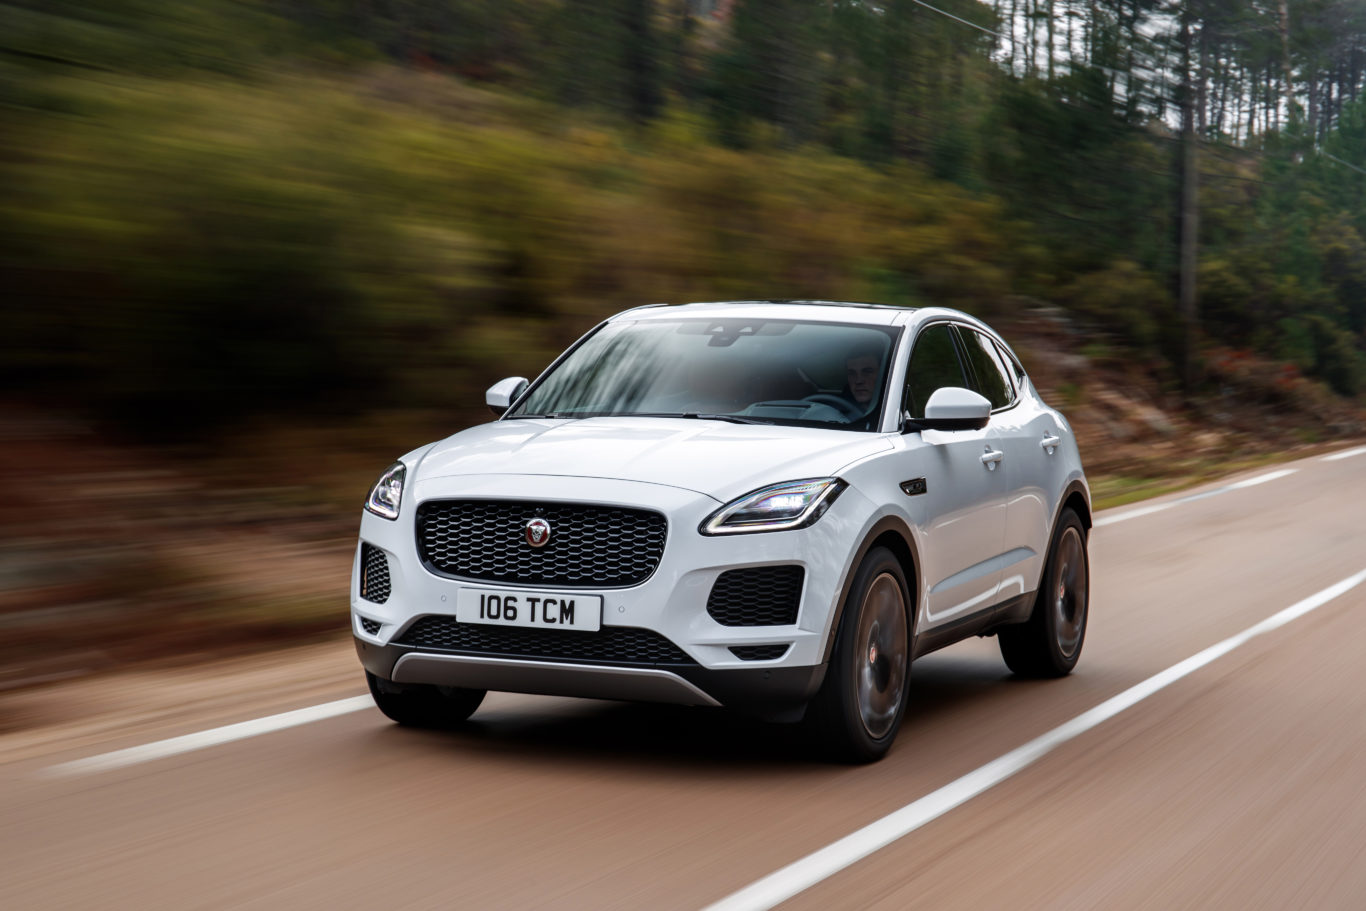 The E-Pace is the smallest SUV in Jaguar's current range